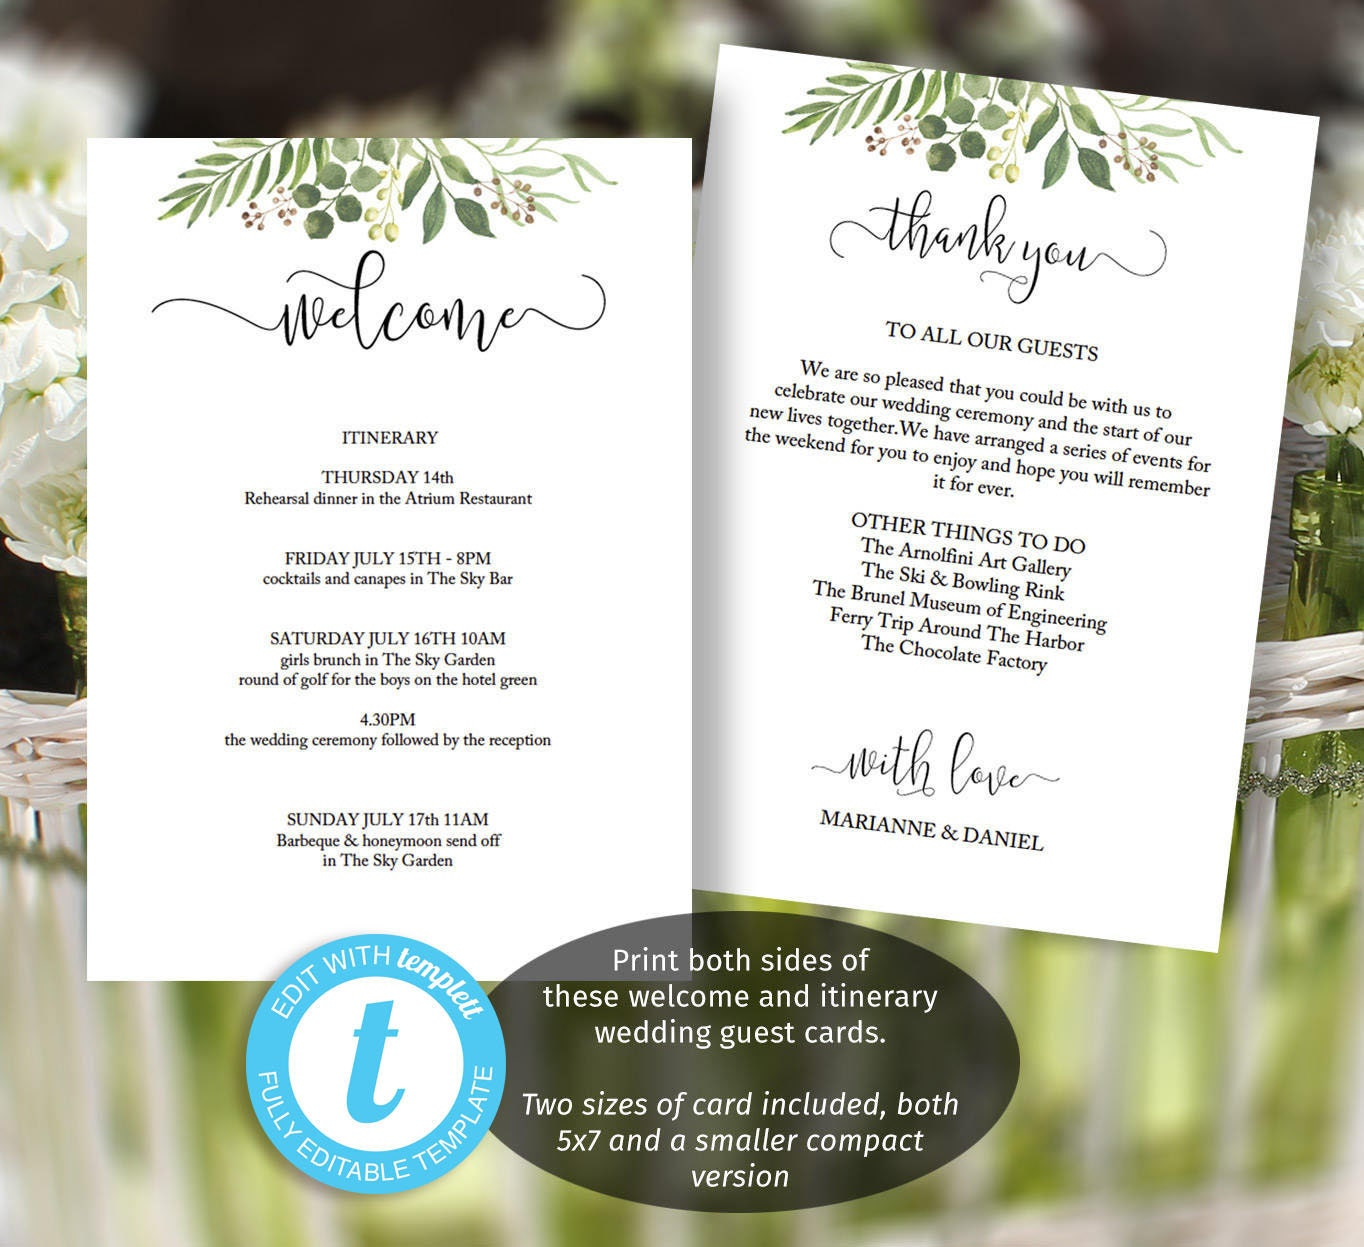 Greenery Wedding Itinerary Template Printable Welcome Message Letter For Guests Thank You Card 5x7 And 6x4 Included Print 2 Sides